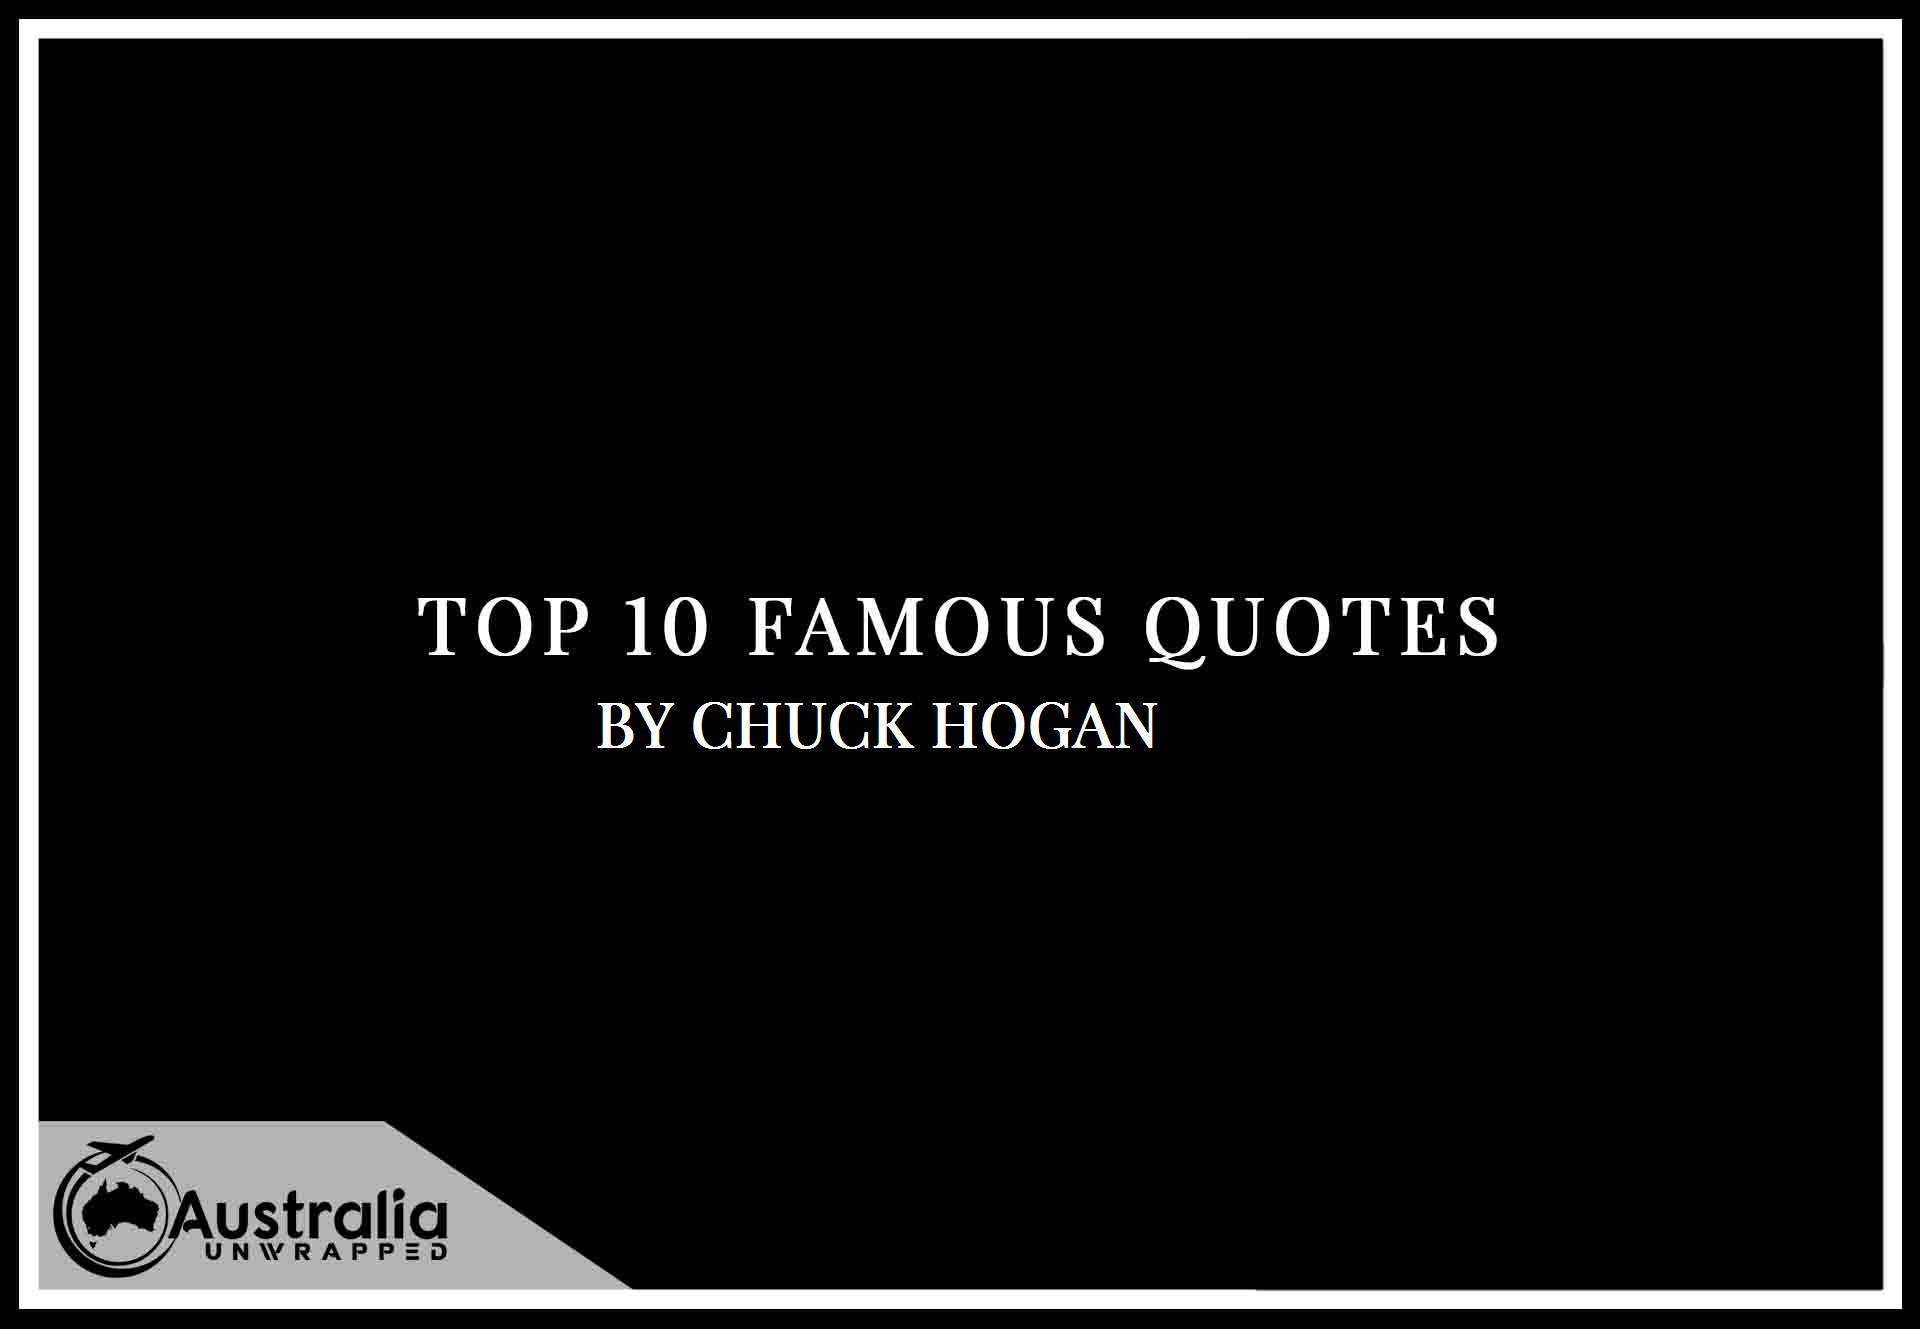 Chuck Hogan's Top 10 Popular and Famous Quotes